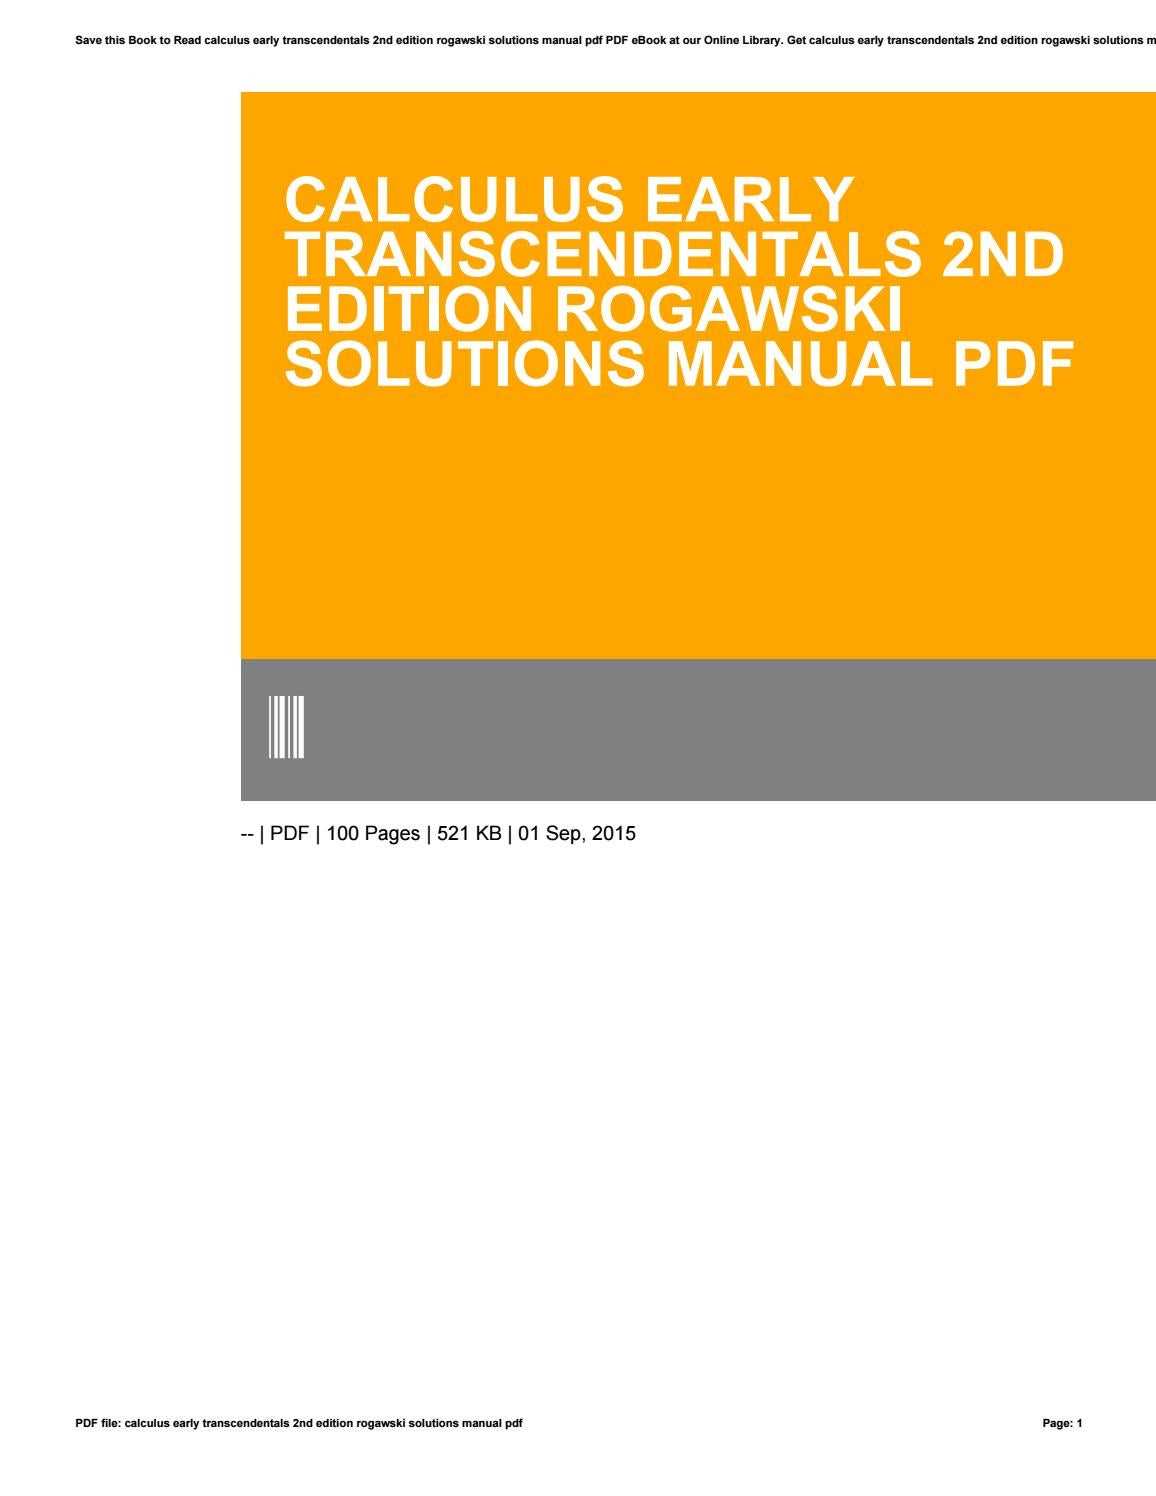 Calculus early transcendentals 2nd edition rogawski solutions manual pdf by  p495 - issuu